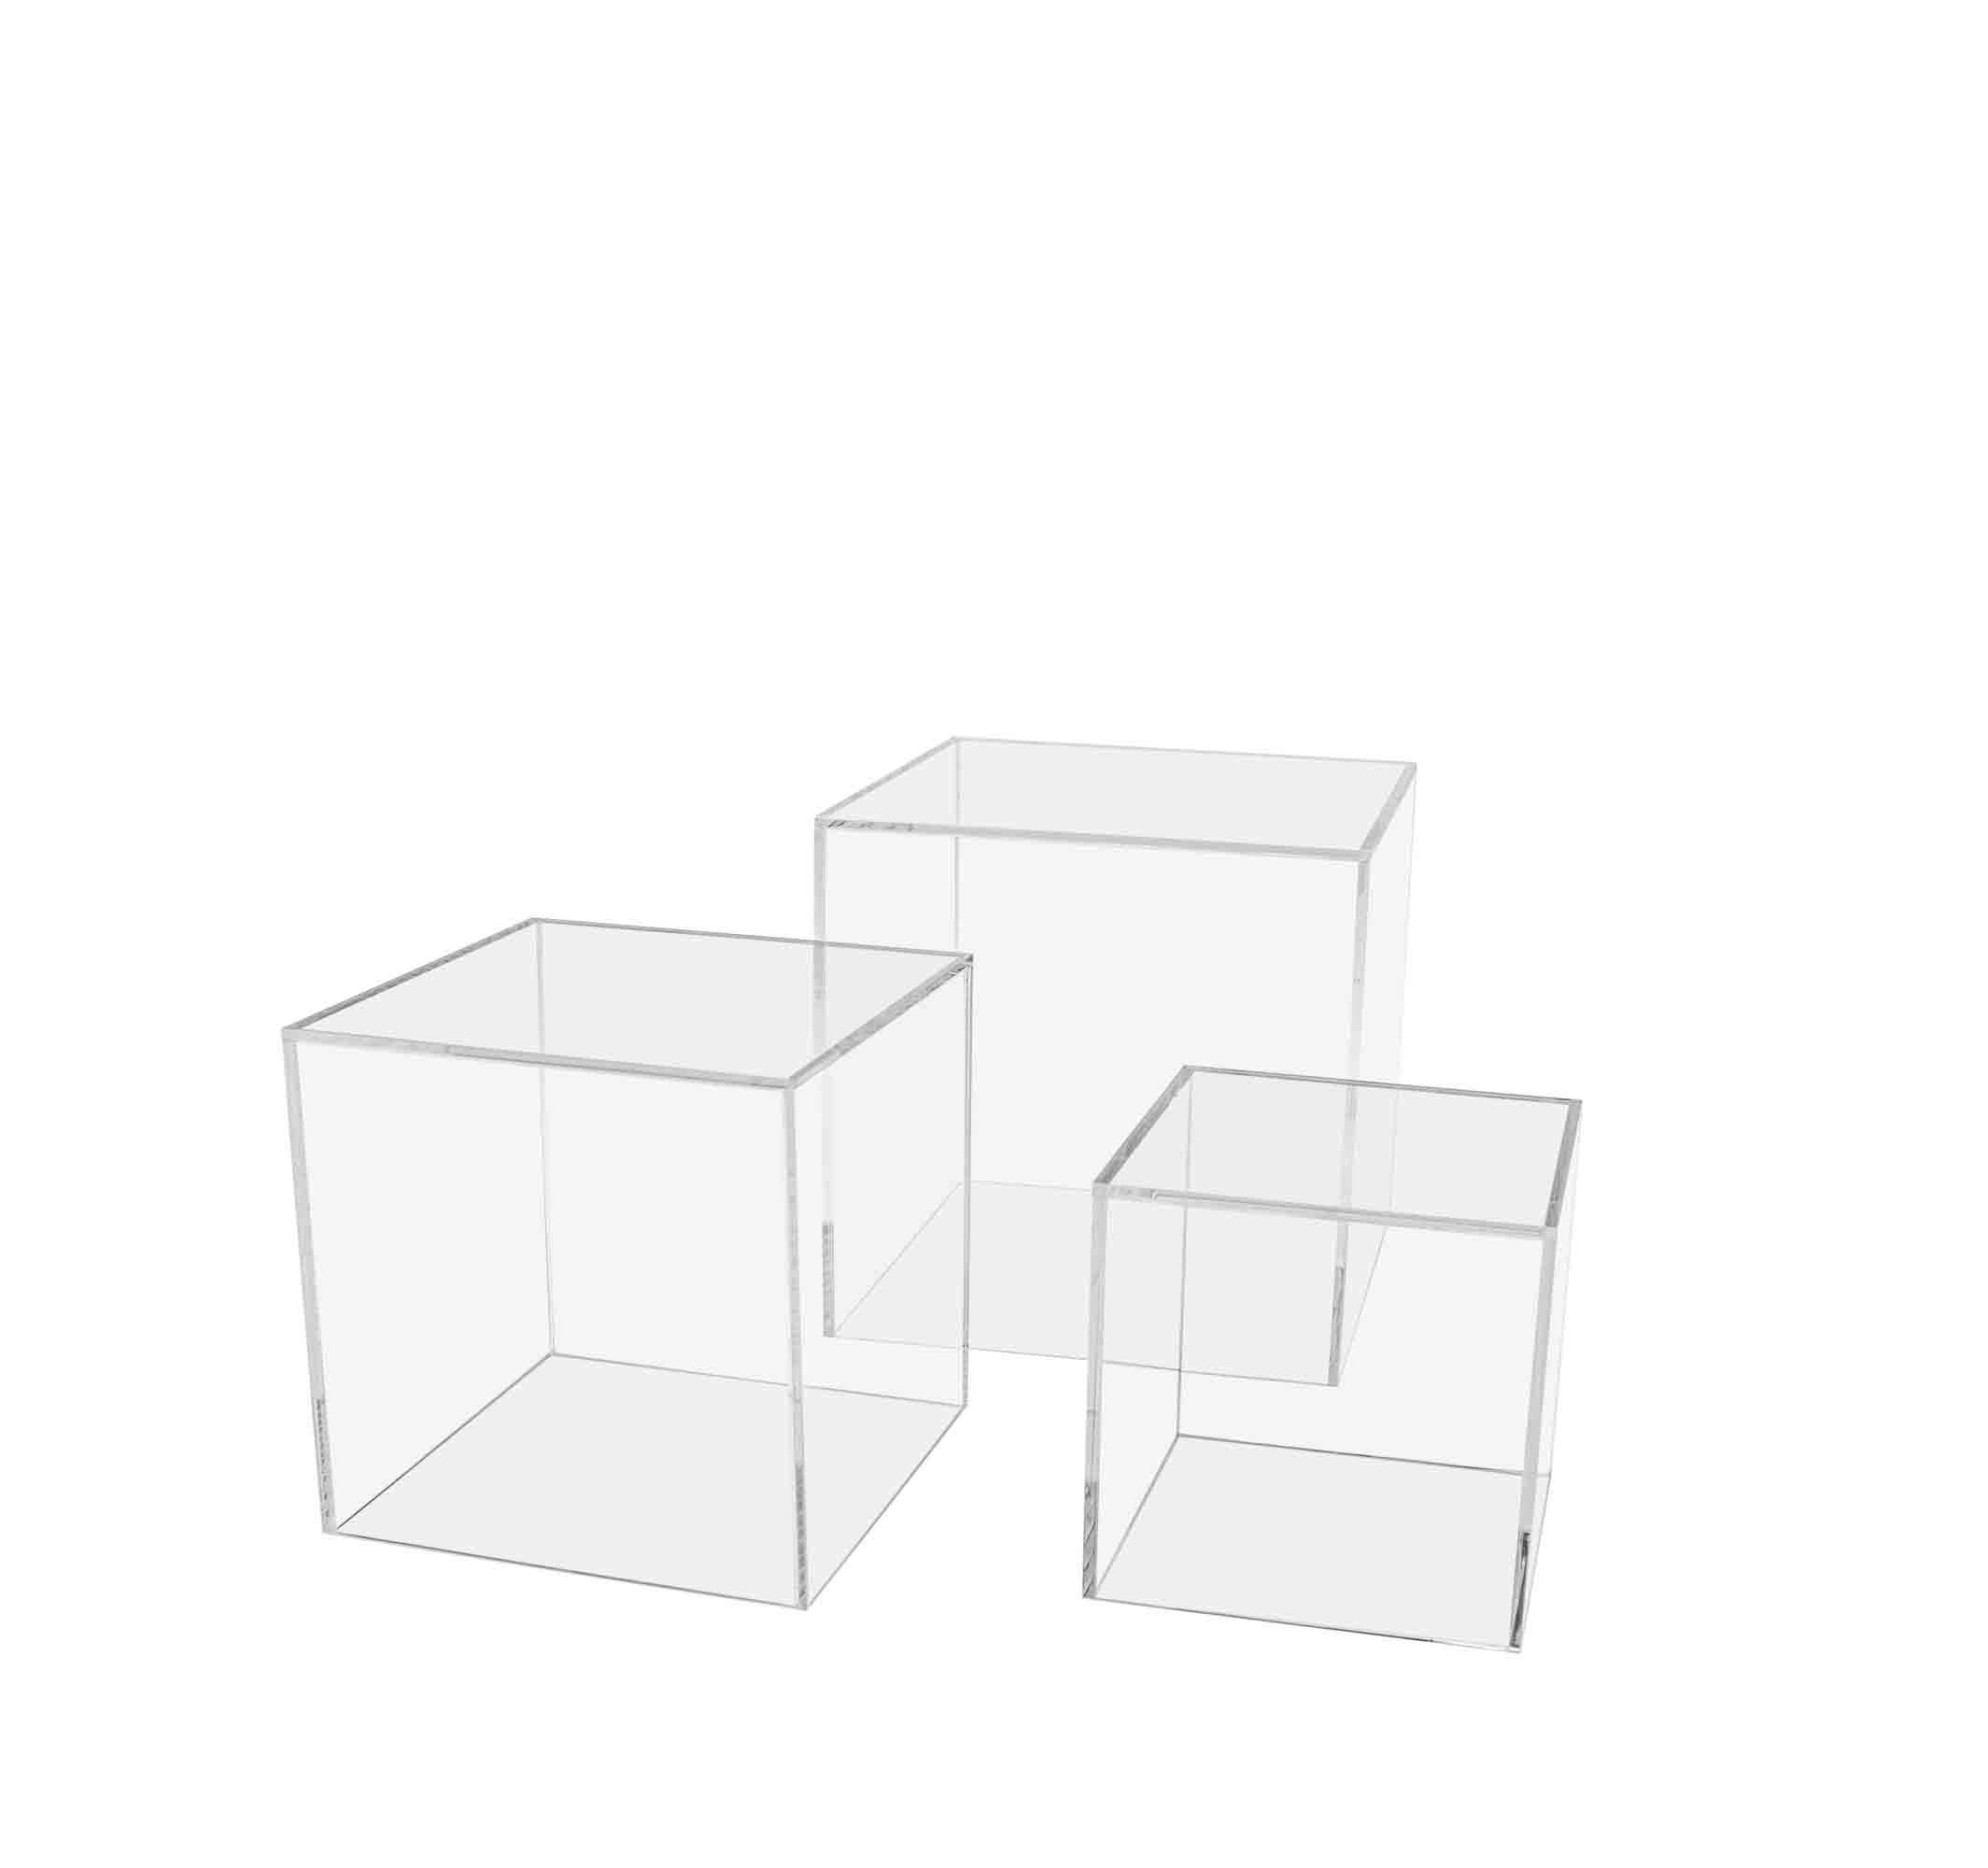 """Marketing Holders 4"""" 5"""" & 6"""" Acrylic Performance Storage Bin Set of 3 Display Art Pack of 5 Sculpture Pedestal Collectible Cube Cover Trophy Trinket Showcase Stand Expo Wedding Reception"""